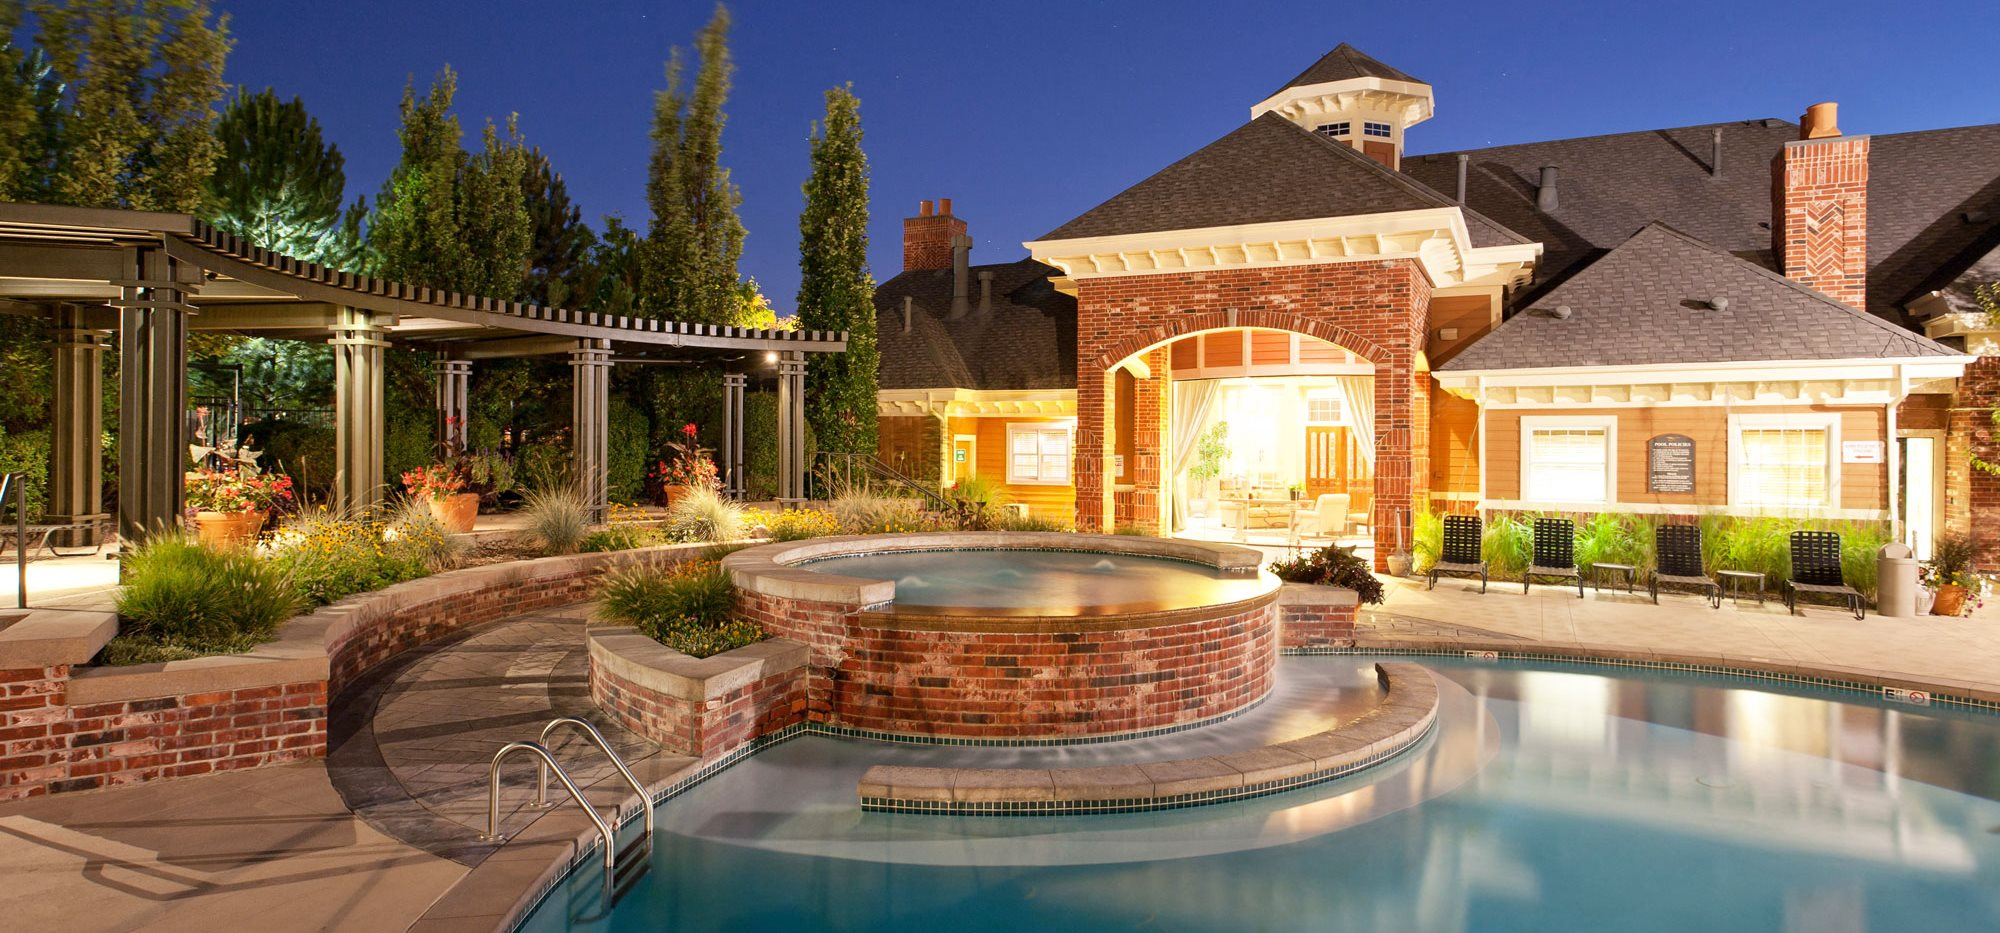 Outdoor ambiance at Windsor at Meadow Hills 4260 Cimarron Way, Aurora